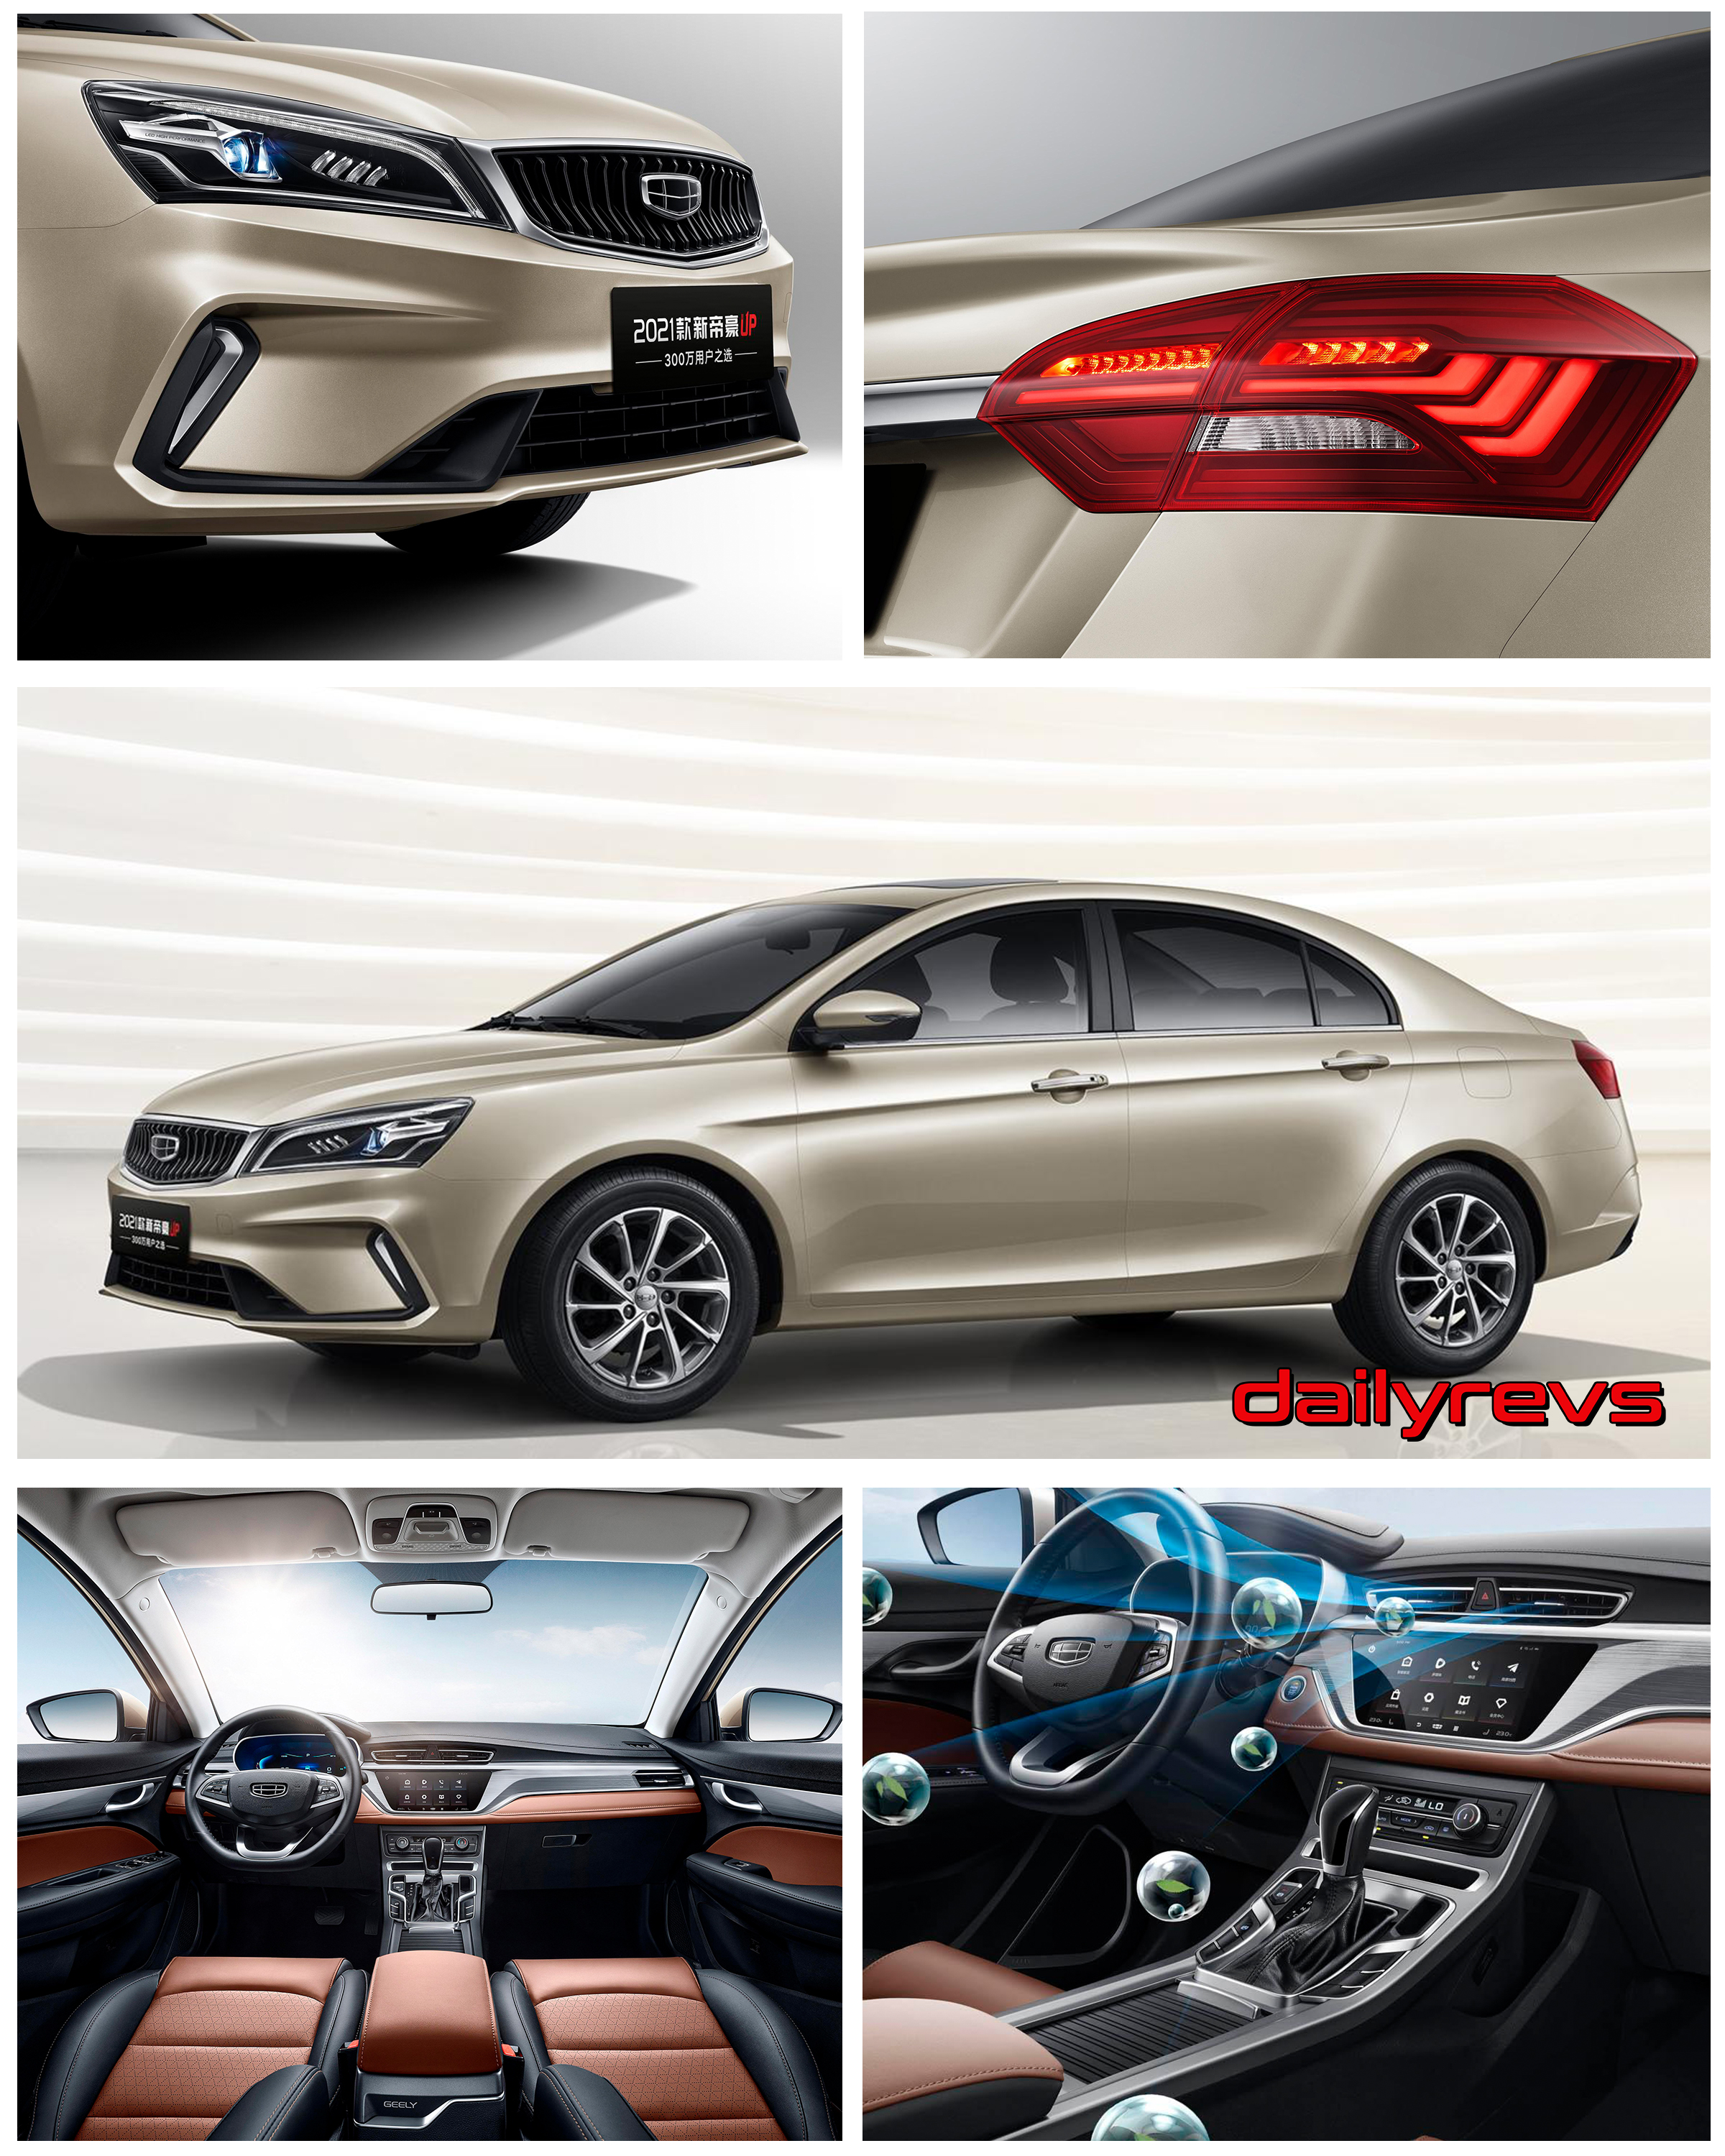 2021 Geely Emgrand